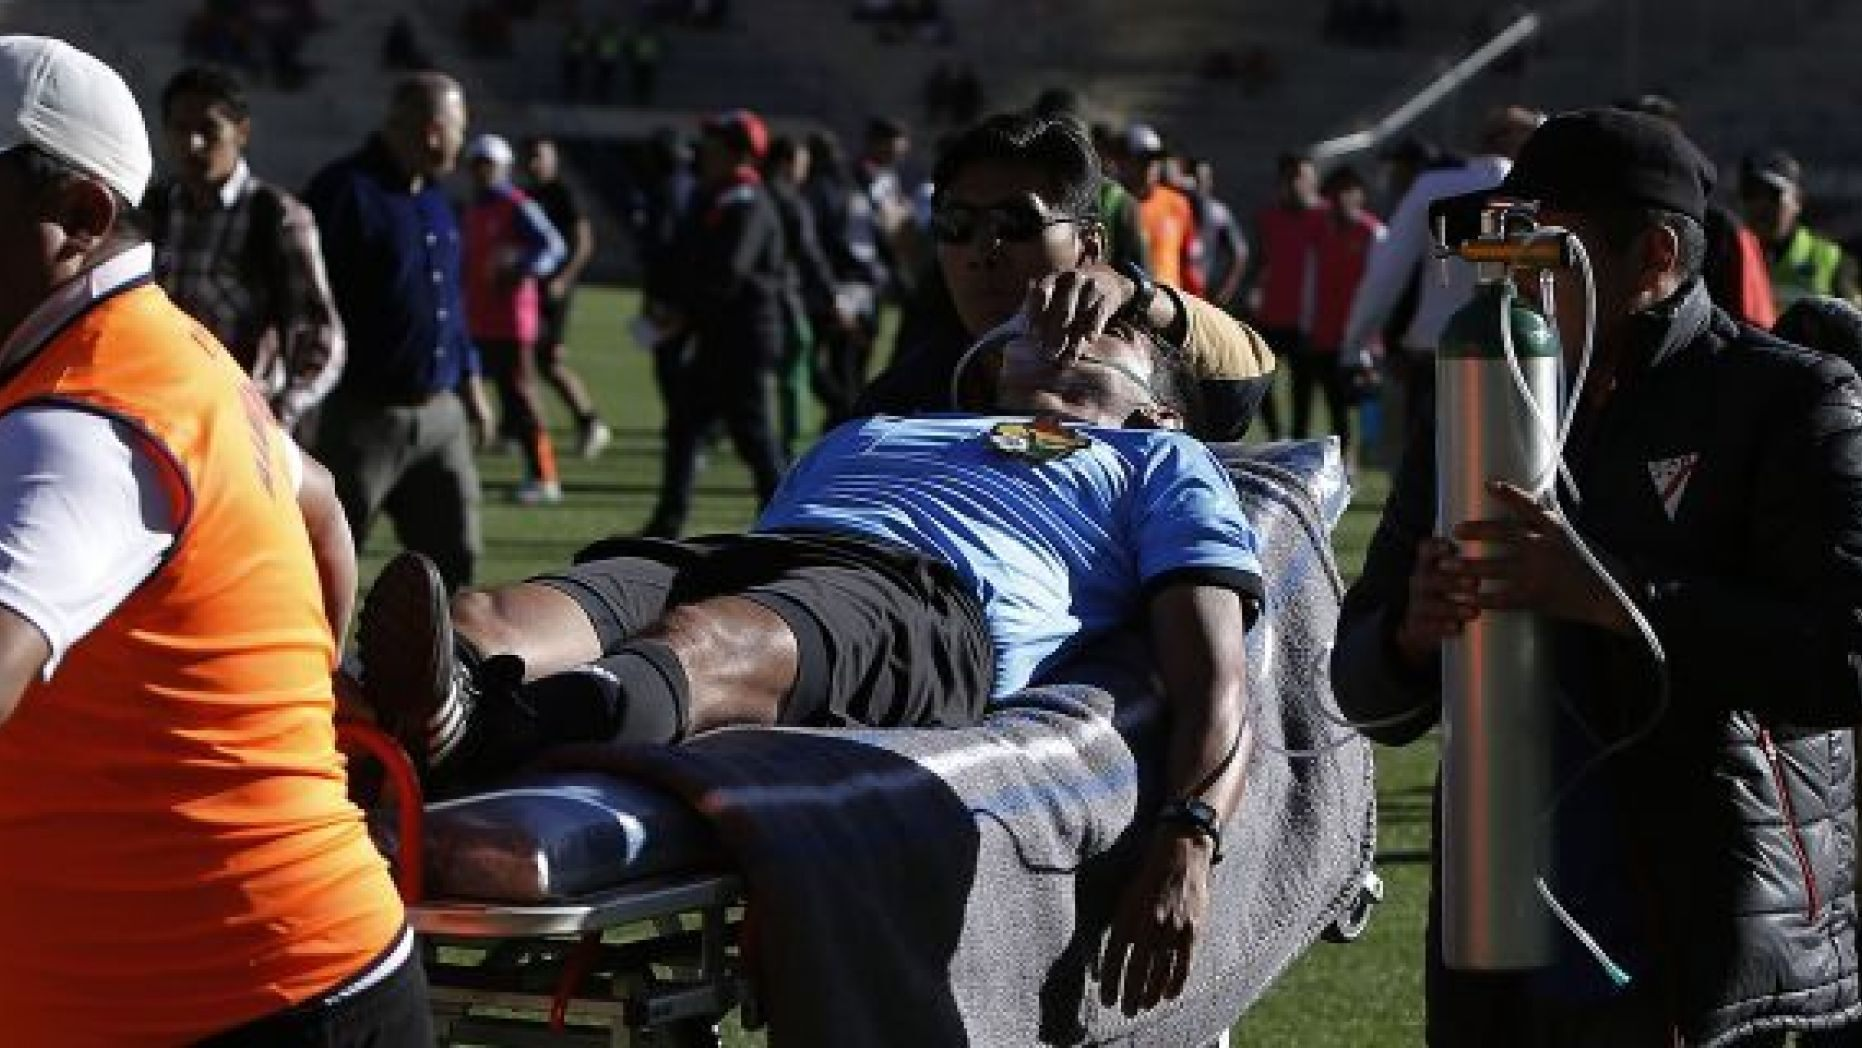 """Referee Victor Hugo Hurtado is transported off the field to the hospital after fainting during a soccer game between the Always Ready team and Oriente Petrolero team, part of the """"Apertura"""" local soccer tournament in El Alto, Bolivia, Sunday, May 19, 2019. (AP Photo/Juan Carlos Usnayo)"""